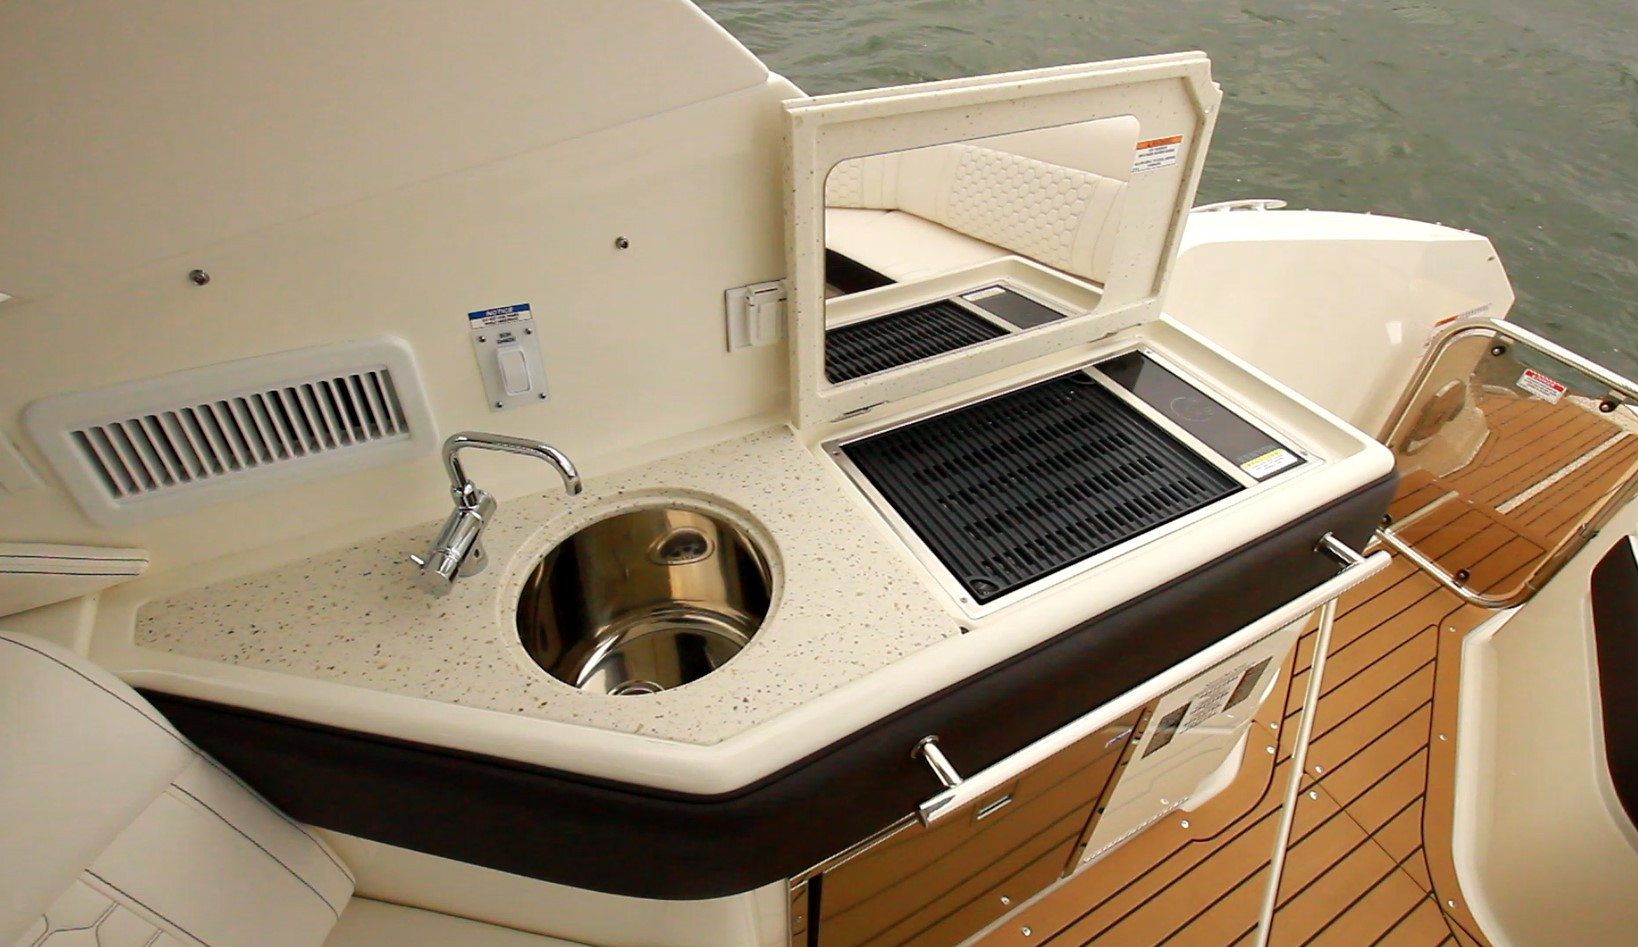 Sink and grill